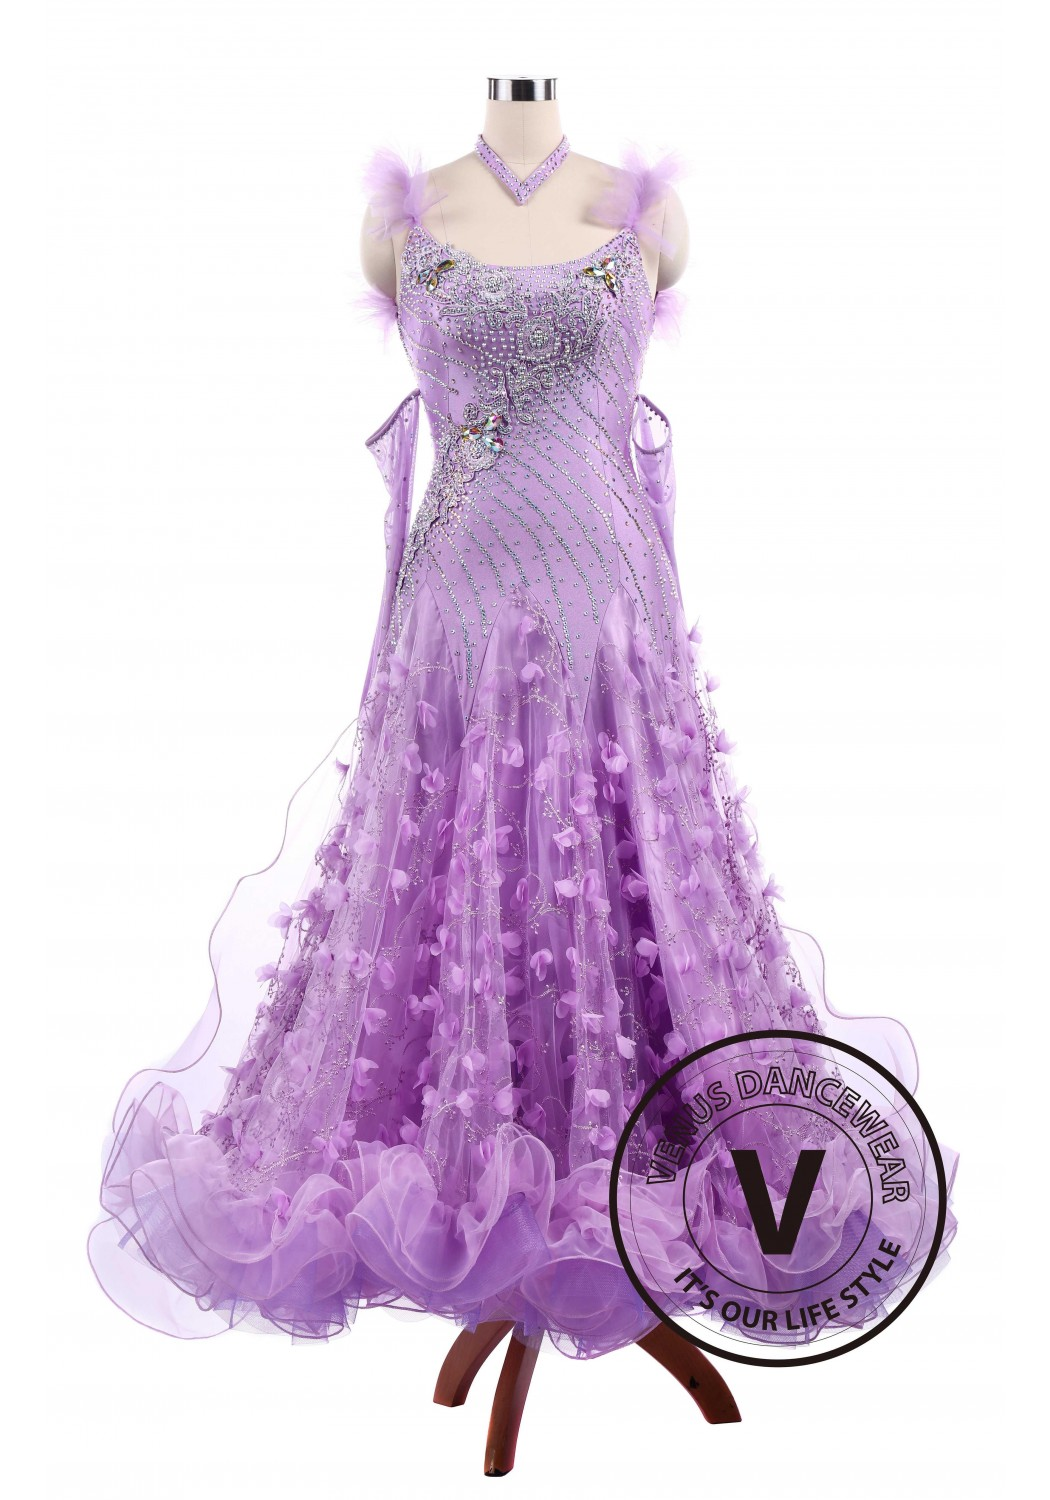 Violet Flower Ballroom Tango Waltz Smooth Competition Standard Dance Dress